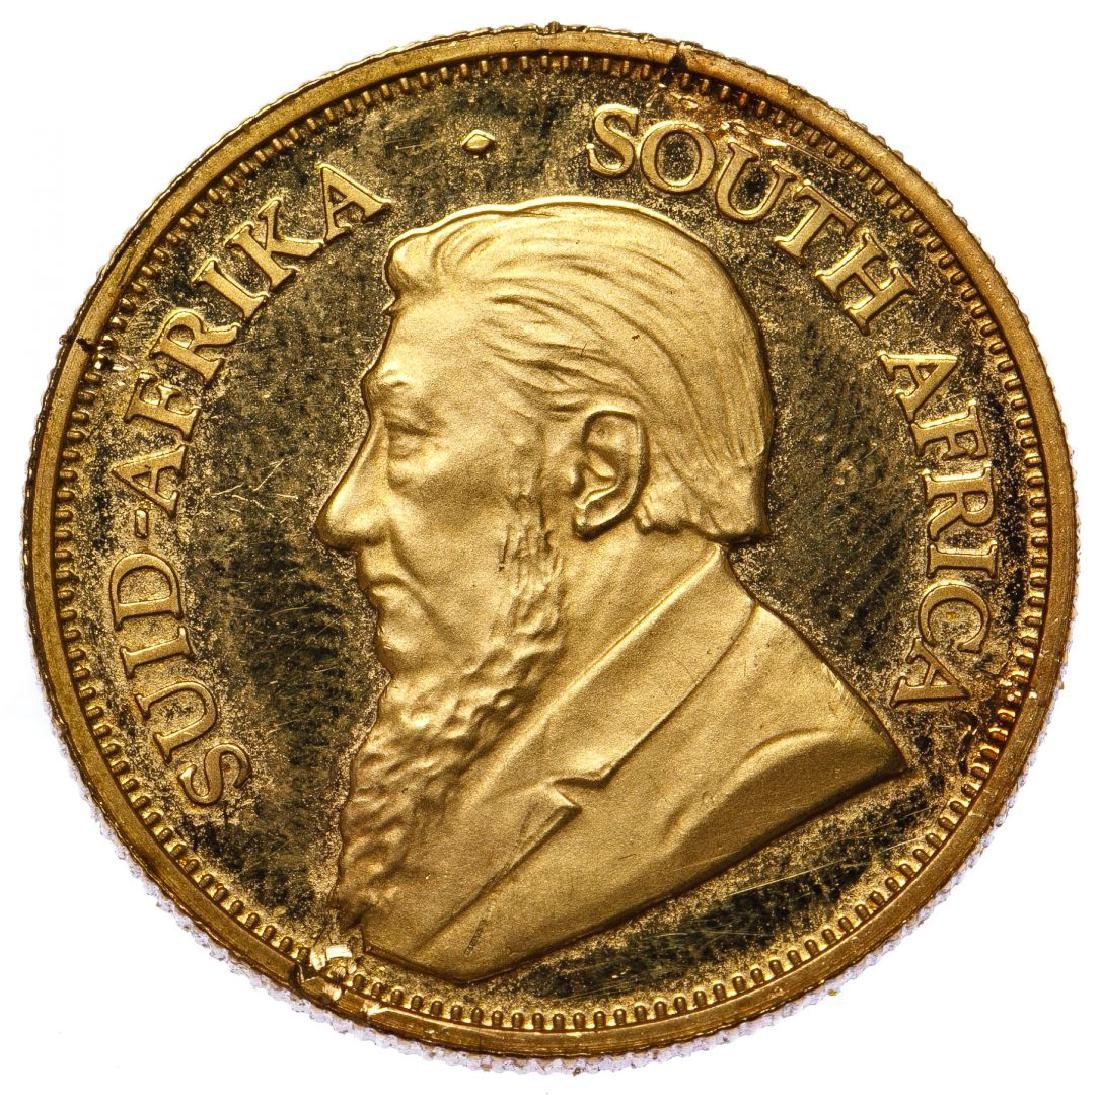 South Africa: 2002 1/2 Krugerrand Coin